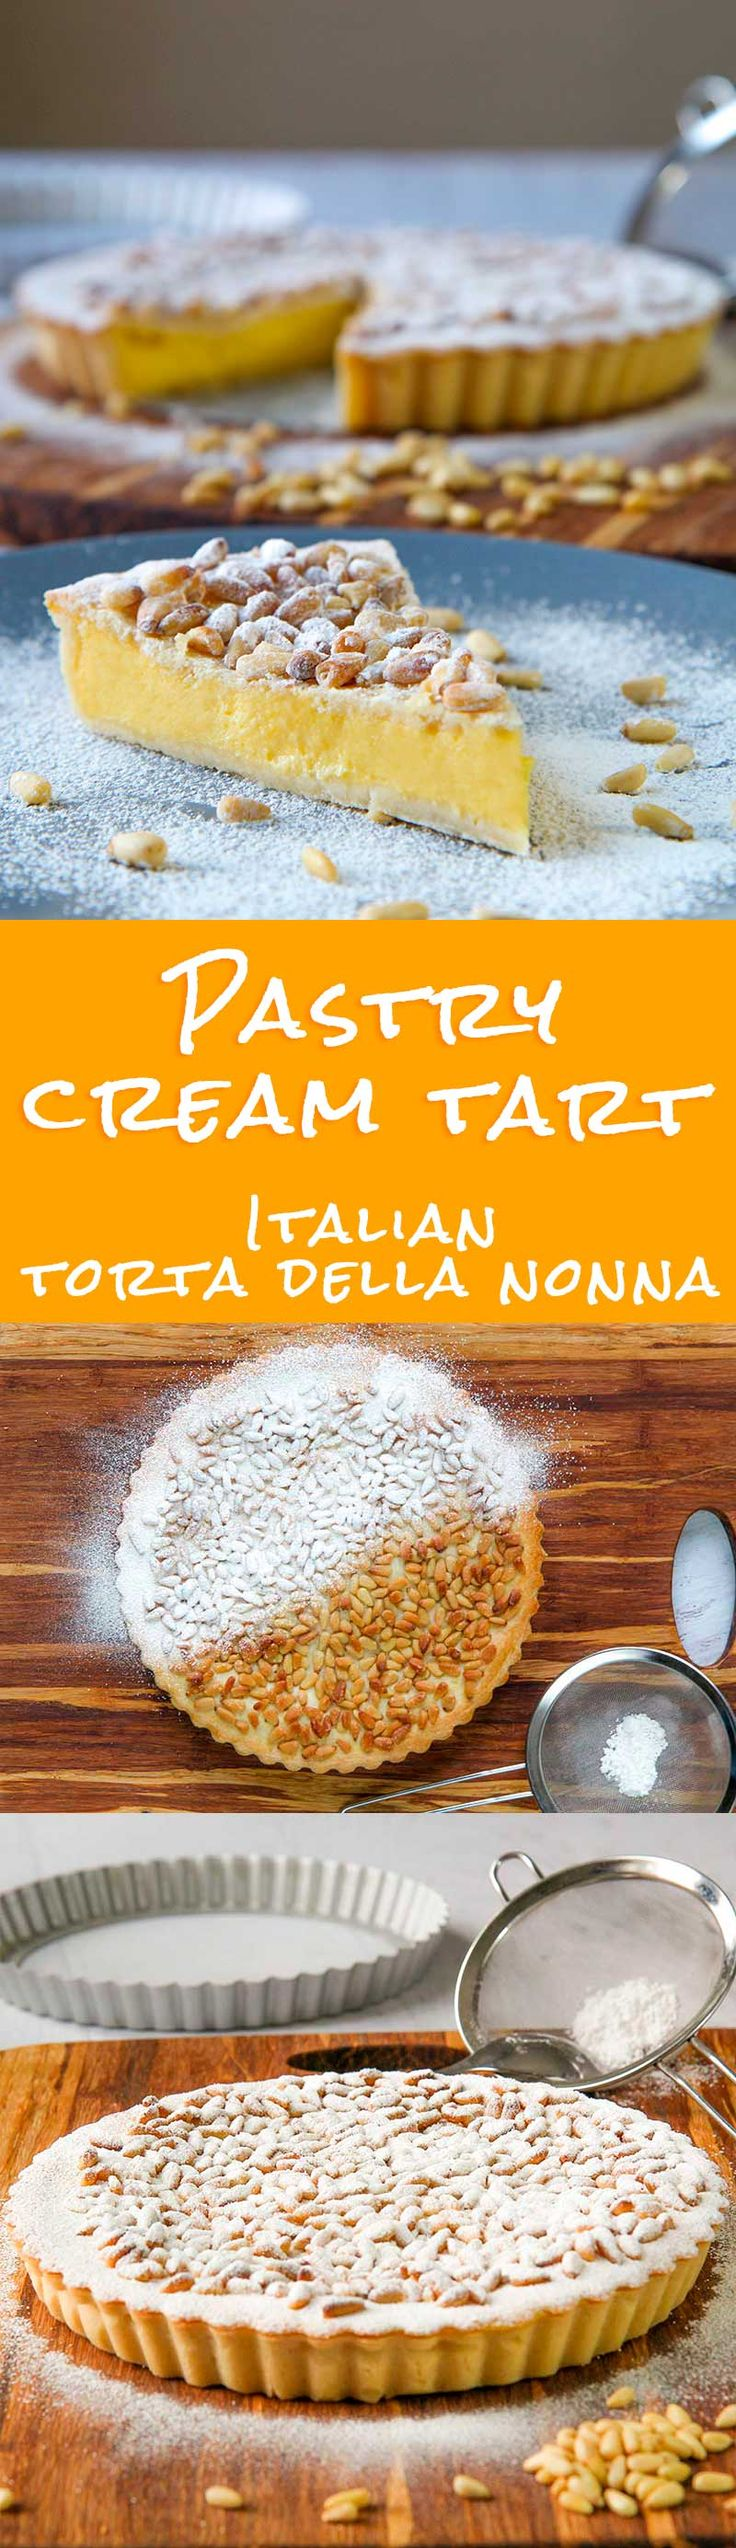 "ITALIAN PASTRY CREAM TART (Torta della Nonna) - Pastry cream tart (called in Italy ""torta della nonna"" = grandmother's cake ) is a classic Italian dessert. A crispy and flavorful pastry dough shell hide a creamy egg and milk custard. A rain of pine nuts and powdered sugar complete this traditional dessert, a sweet remembrance for any Italian kid! - desserts recipe vegetarian custard party feast"